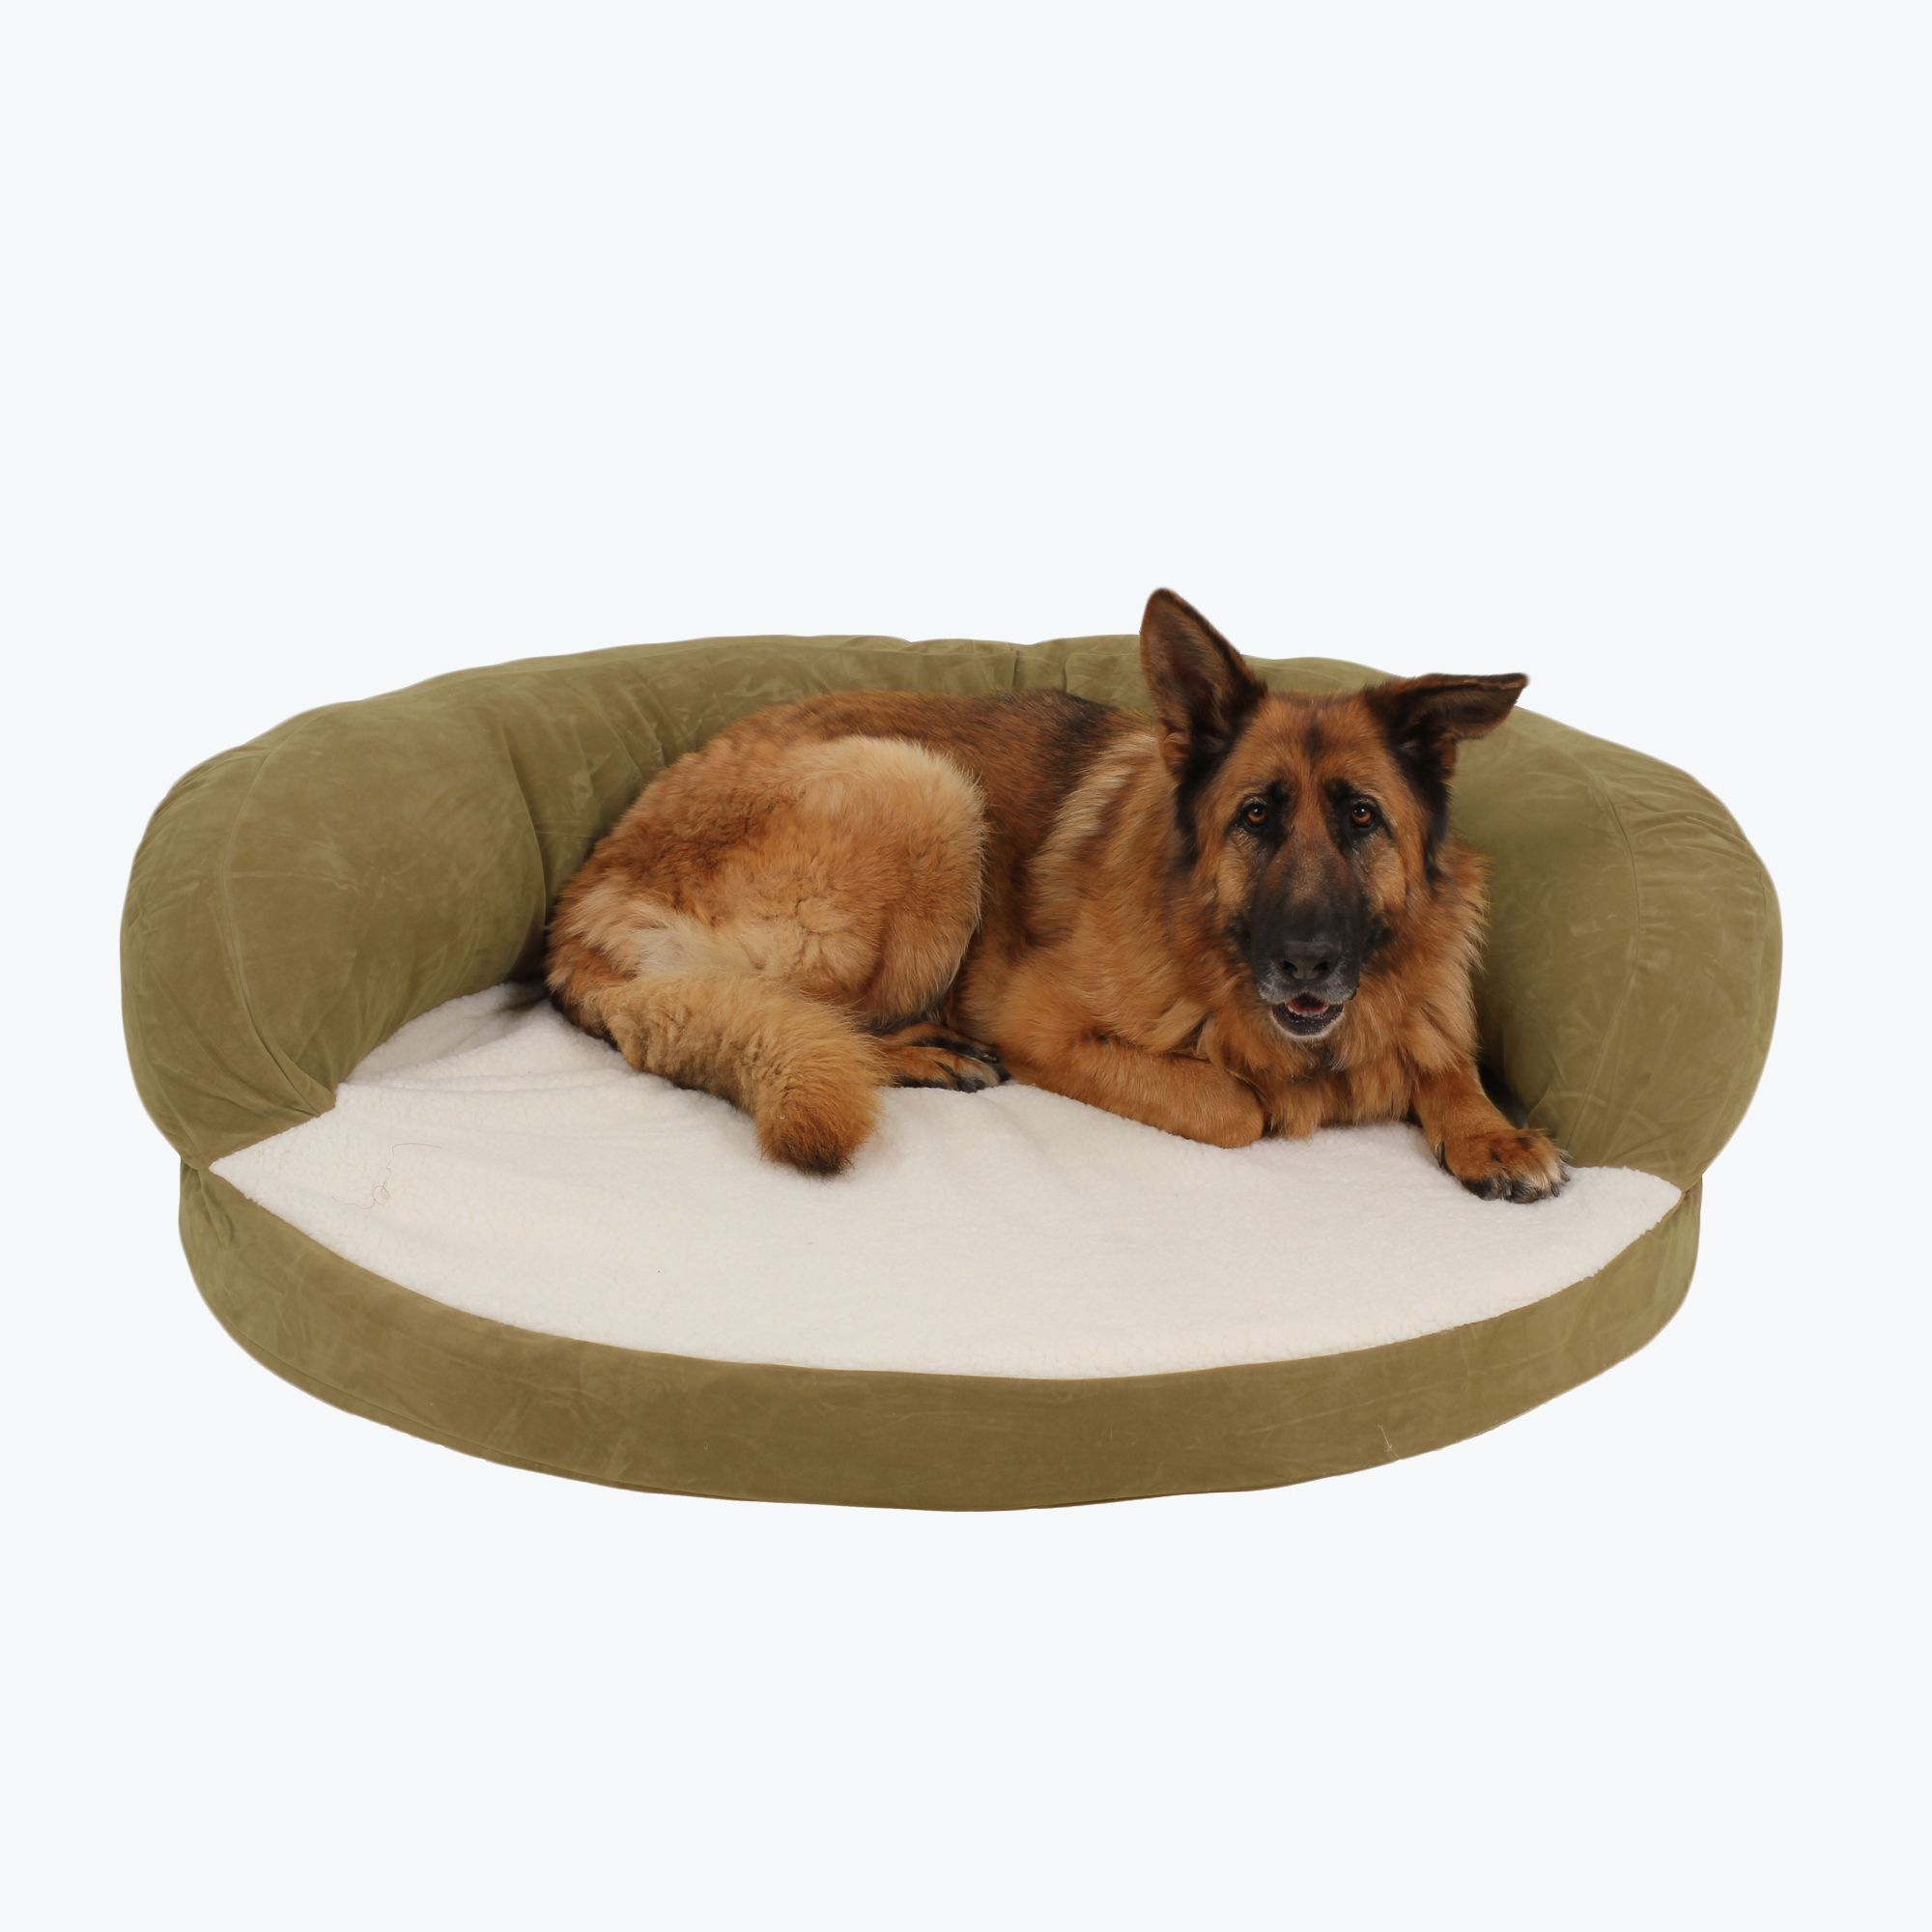 Ortho Sleeper Bolster Bed Bolster dog bed, Personalized